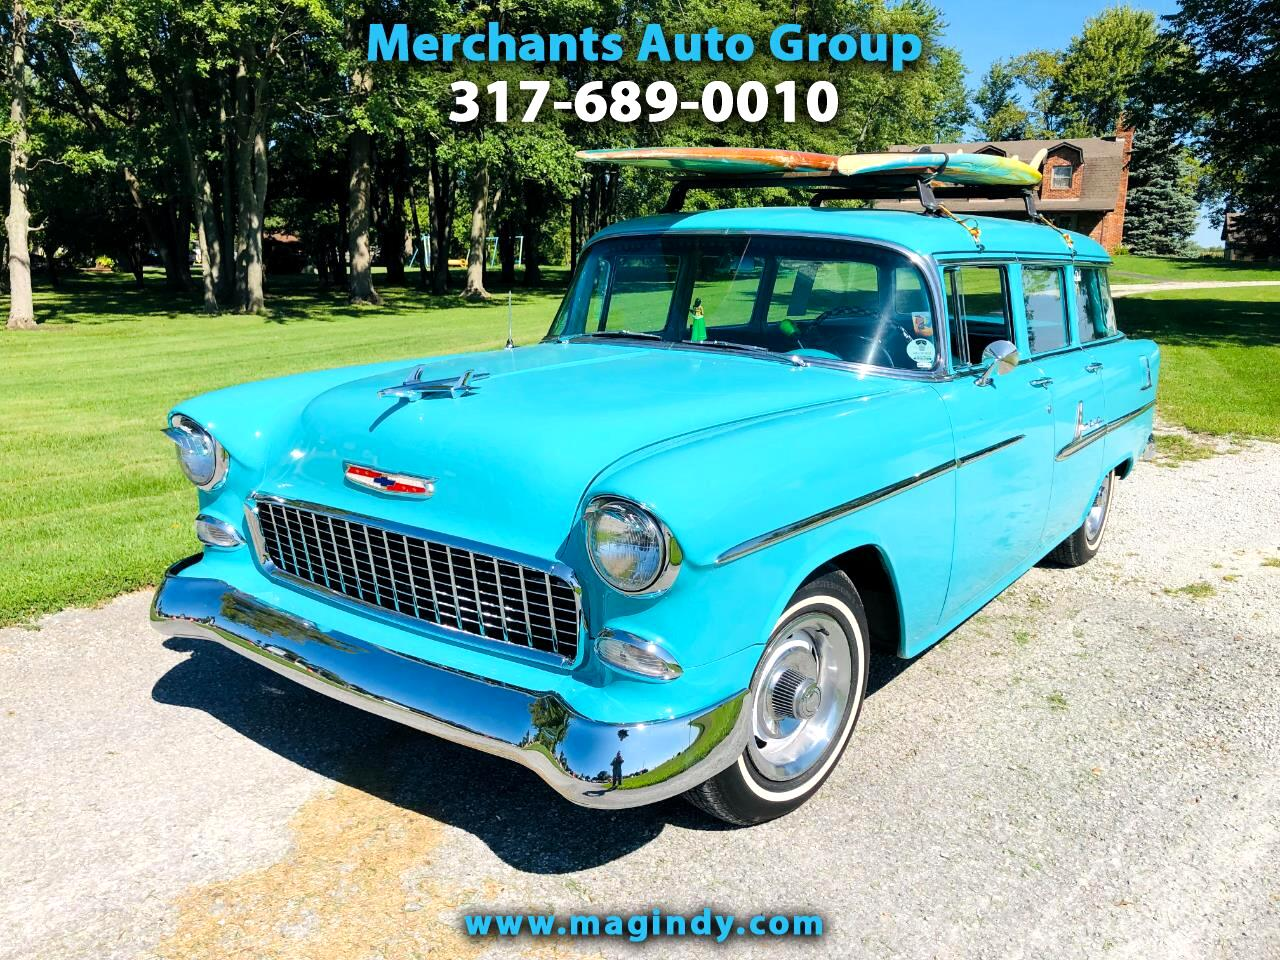 1955 Chevrolet Bel Air Beauville Wagon